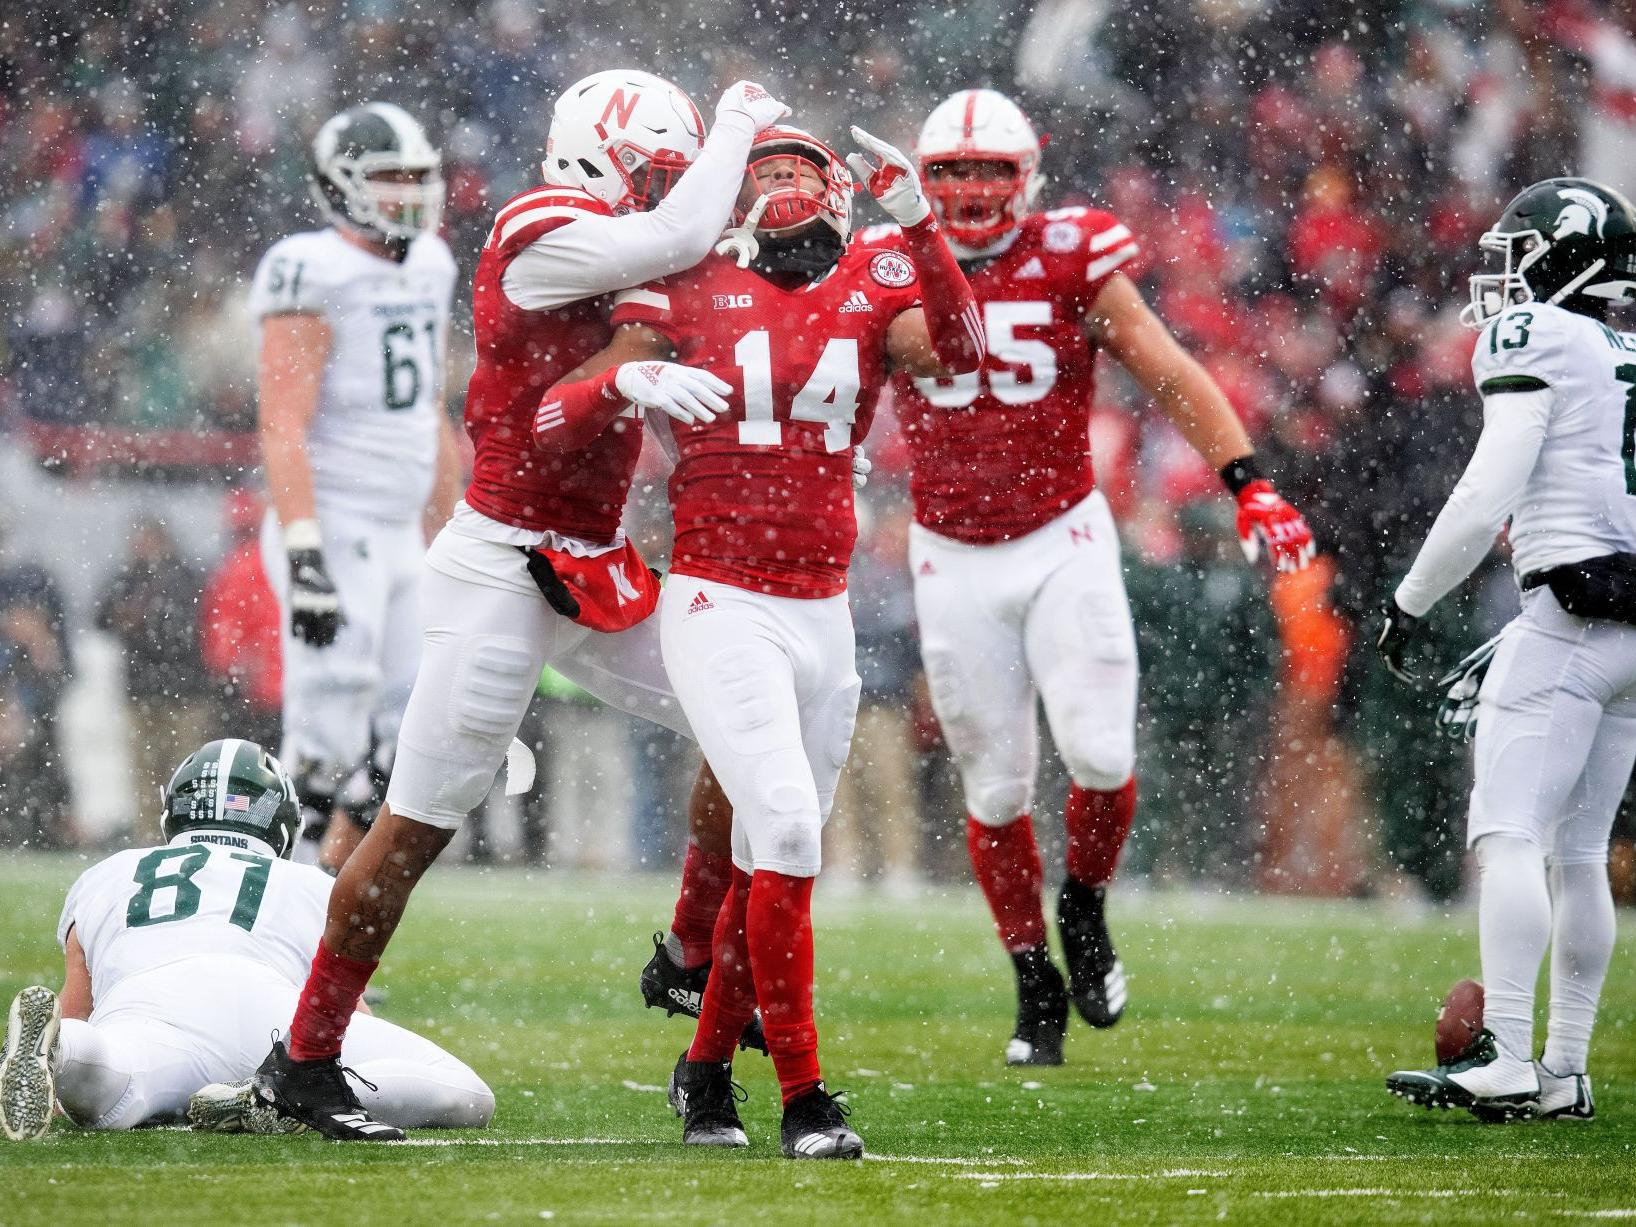 McKewon: Blackshirts came to play on Saturday. They'll need to do it again on Friday at Iowa